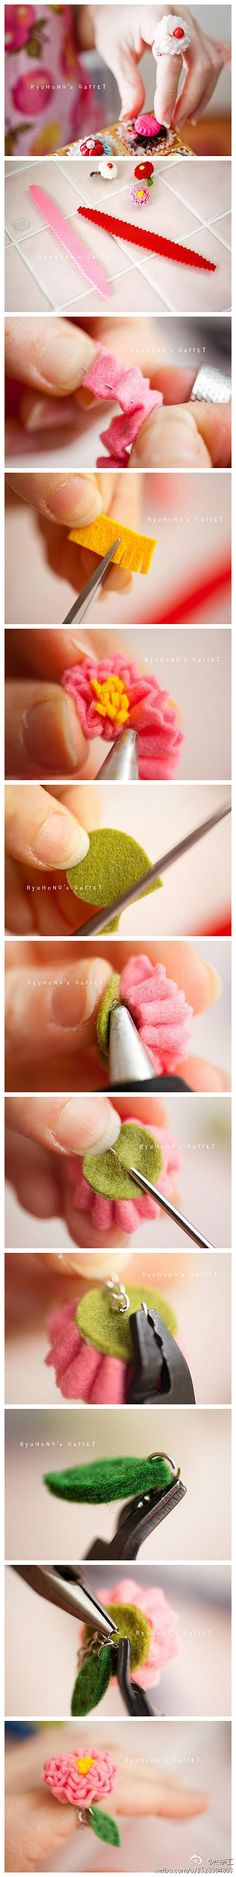 DIY felt little flower for a ring  #howto #tutorial #felt #ring #flower #diy #craft